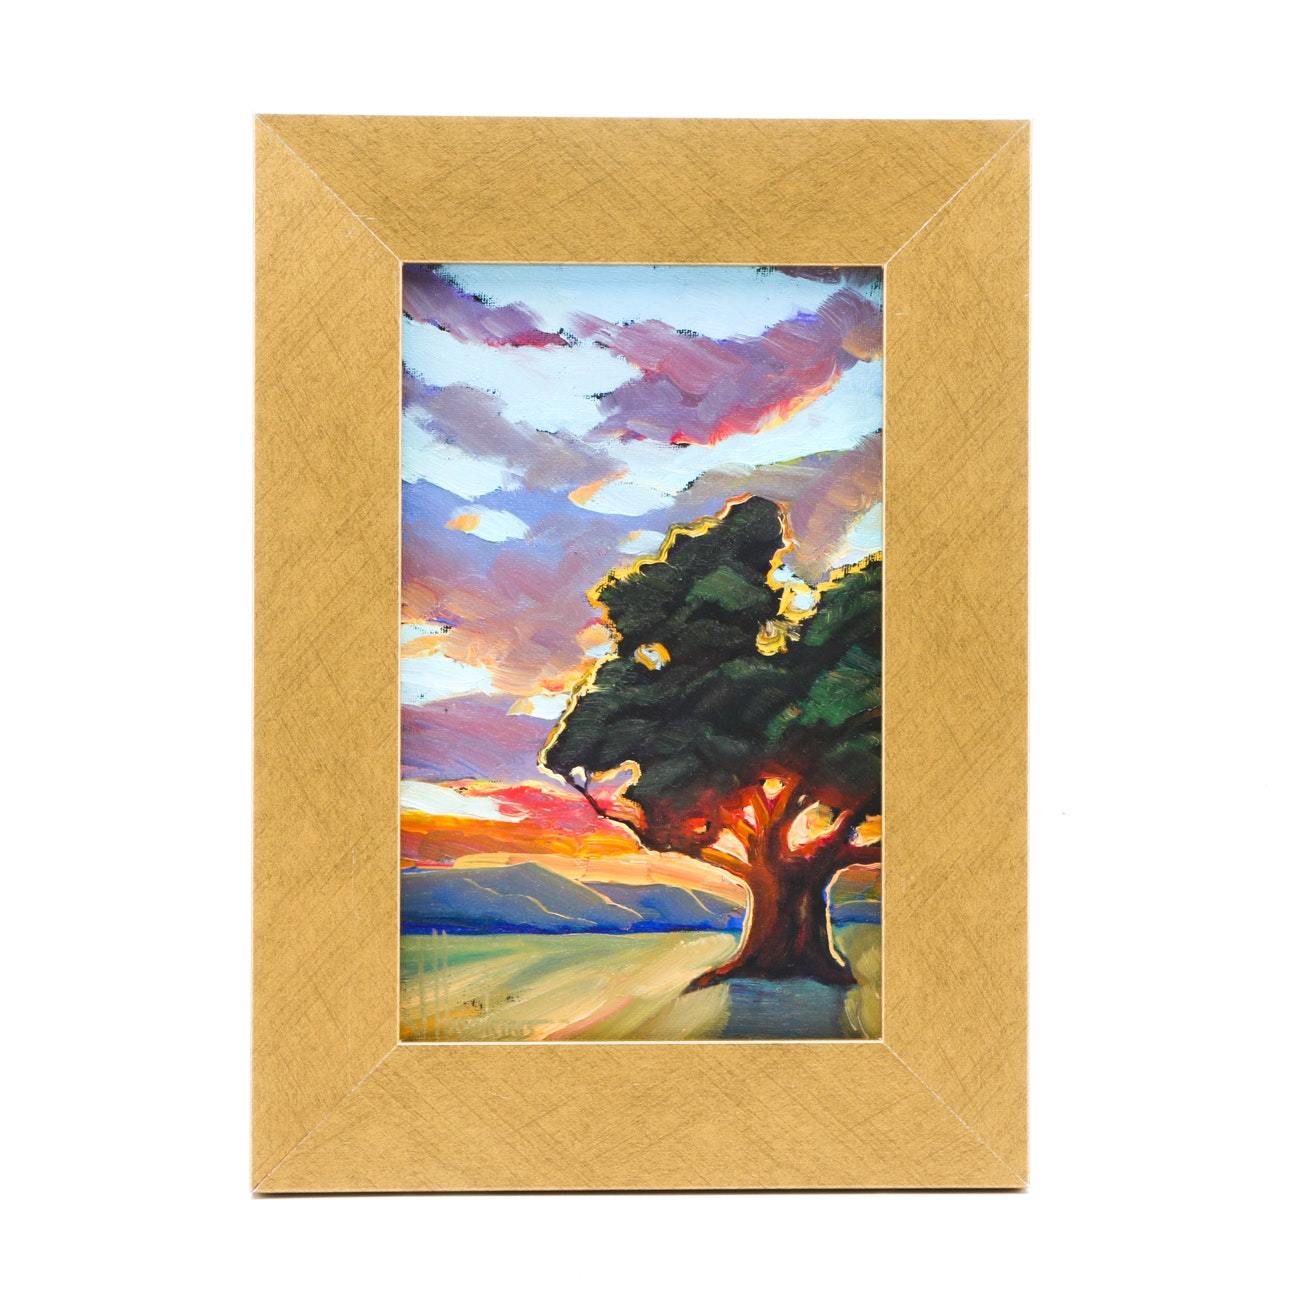 William Hawkins Oil Painting on Canvas Board of a Tree